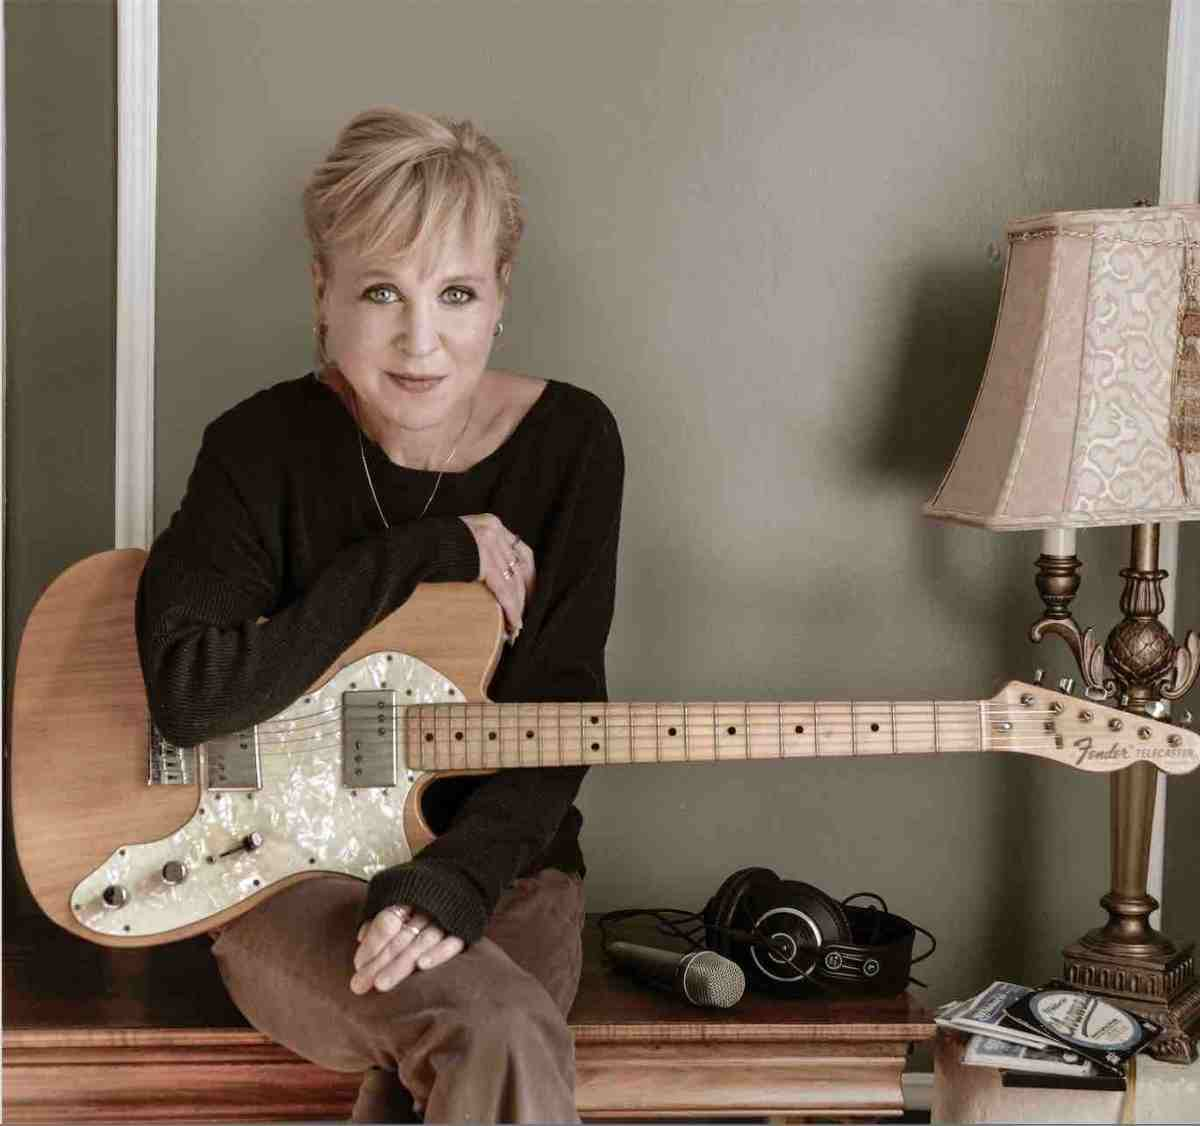 Interview with Kristin Hersh